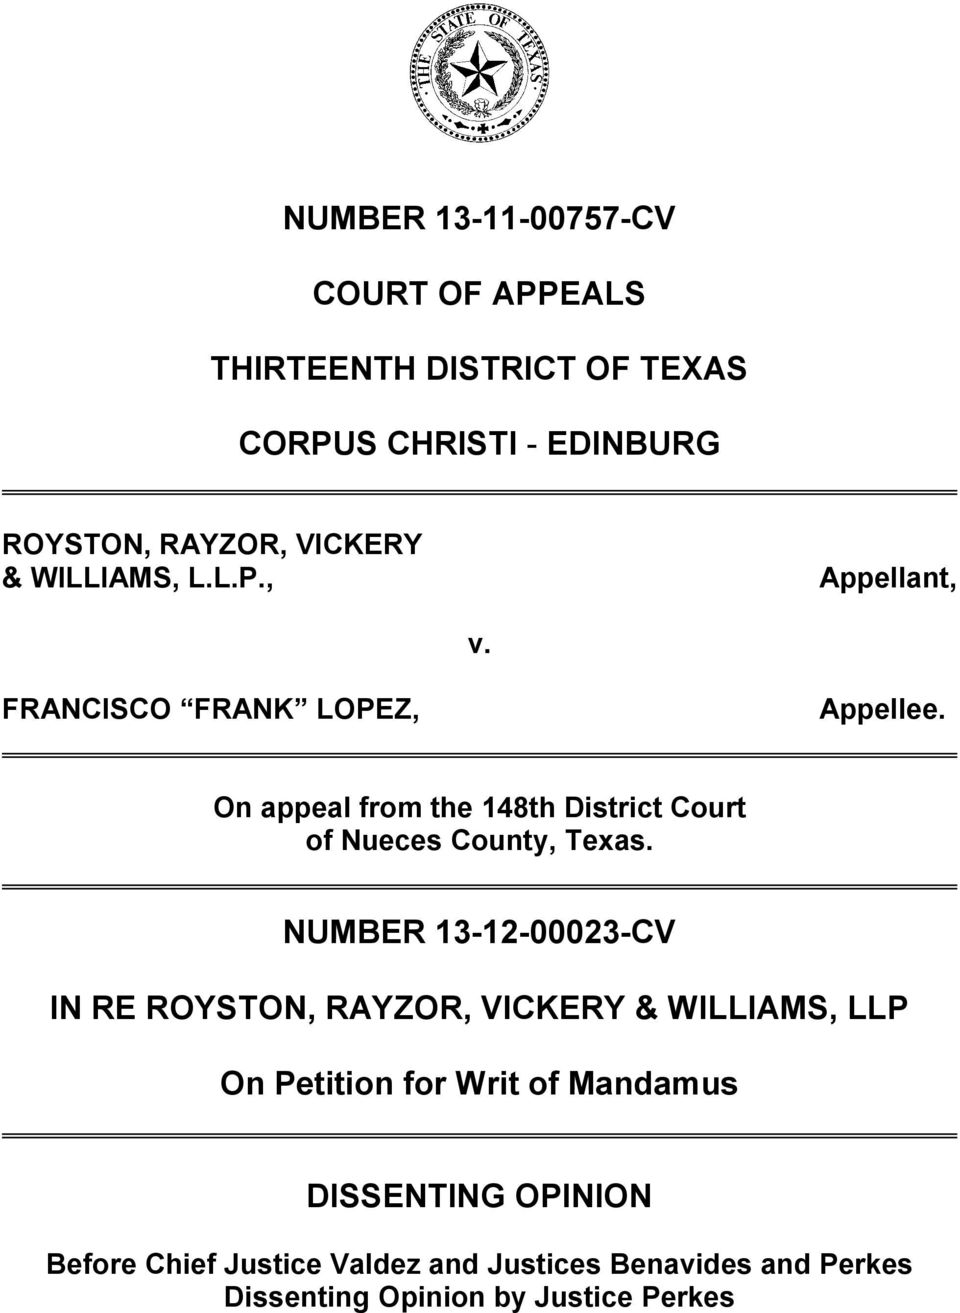 On appeal from the 148th District Court of Nueces County, Texas.